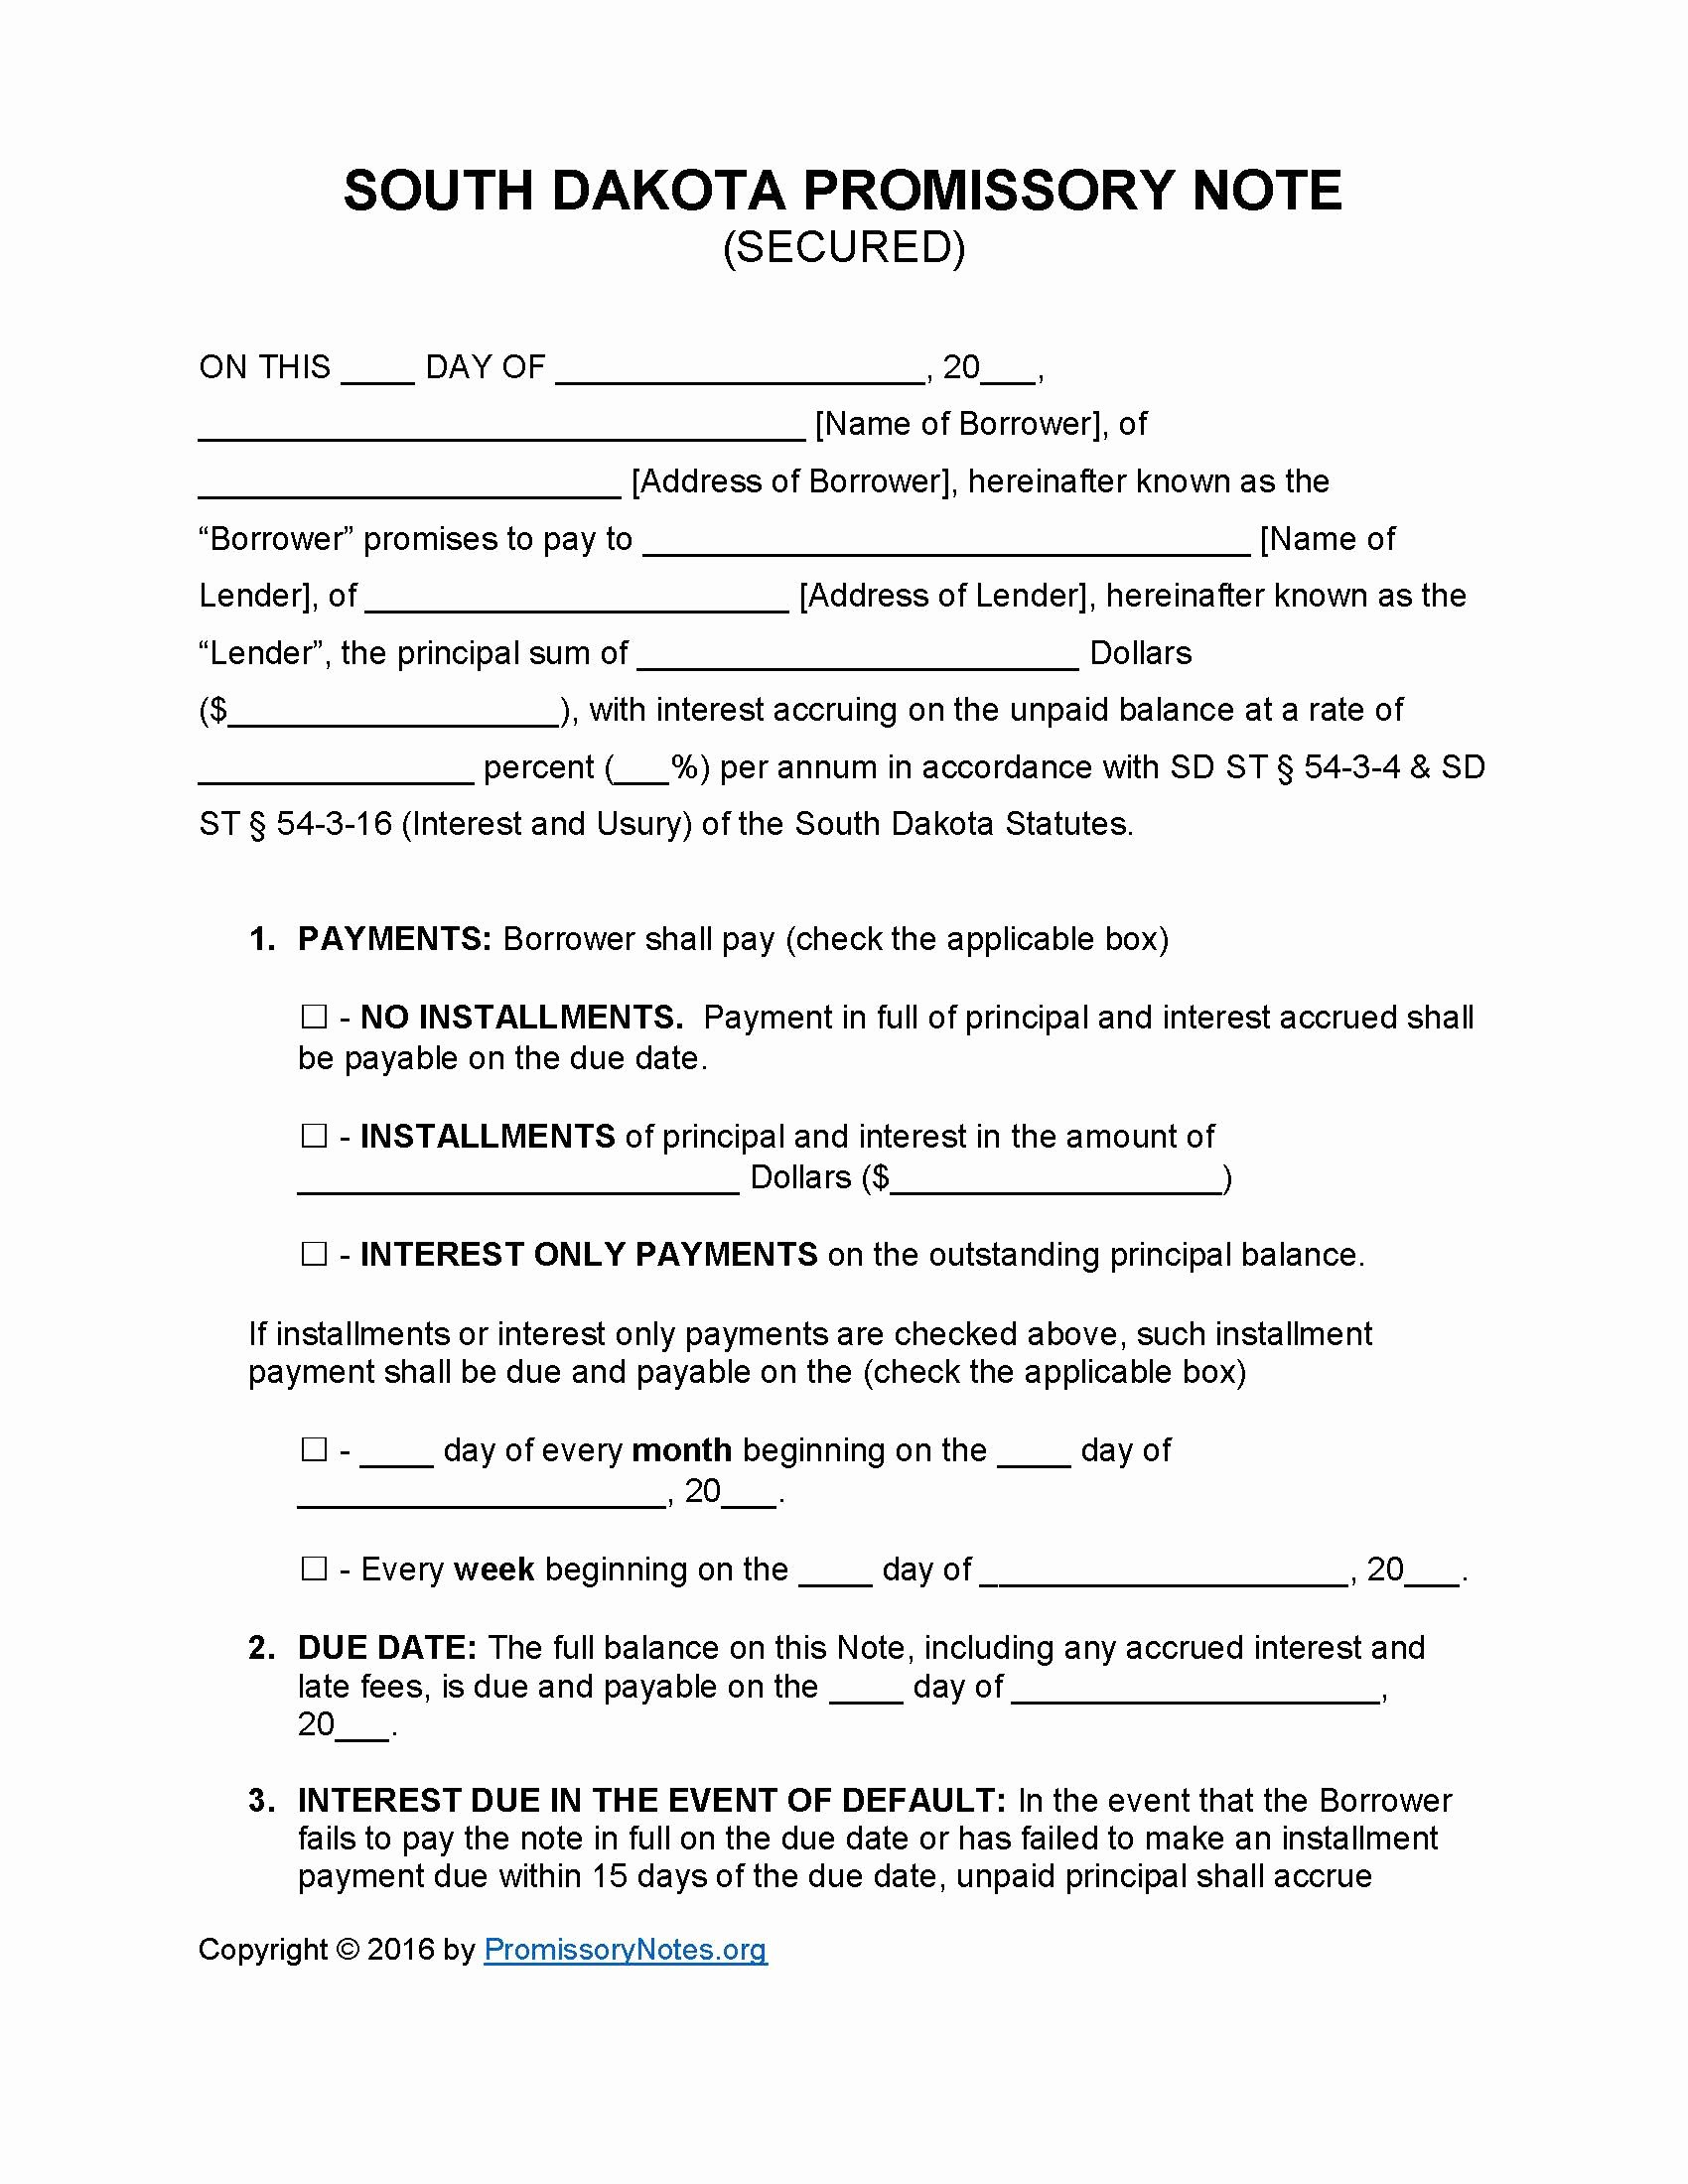 Secured Promissory Note Template Unique south Dakota Secured Promissory Note Template Promissory Notes Promissory Notes